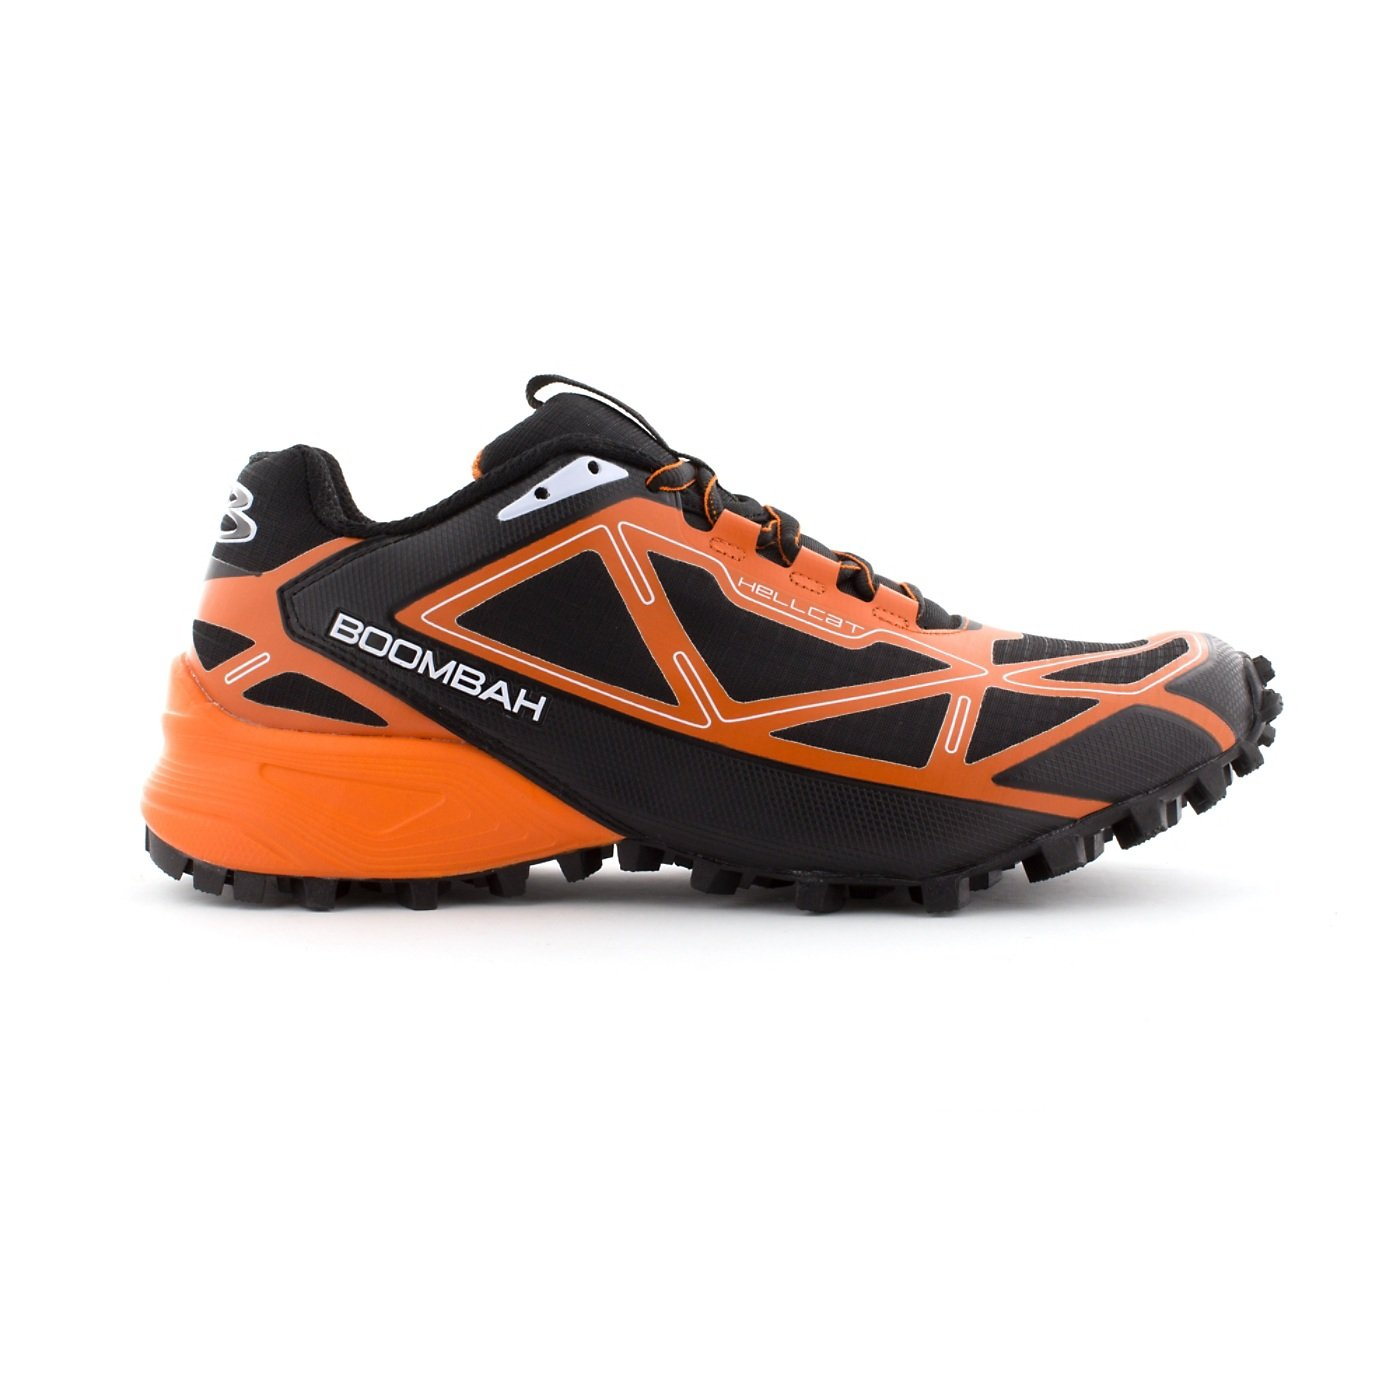 Boombah Men's Hellcat Trail Shoe - 14 Color Options - Multiple Sizes B073X63R2F 9.5|Black/Orange